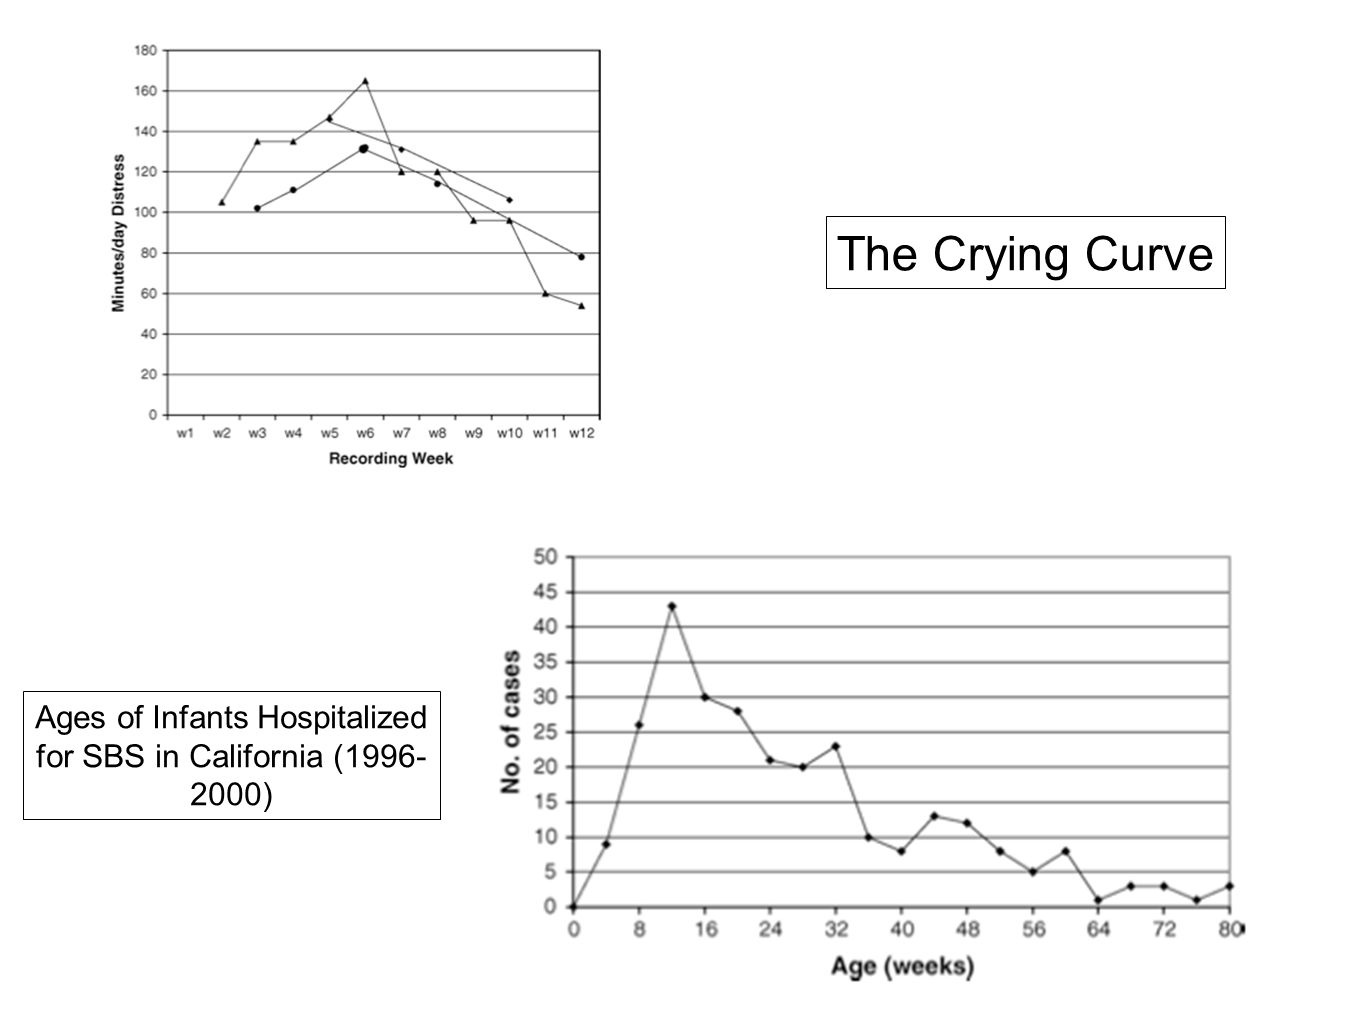 The Crying Curve Ages of Infants Hospitalized for SBS in California (1996- 2000)